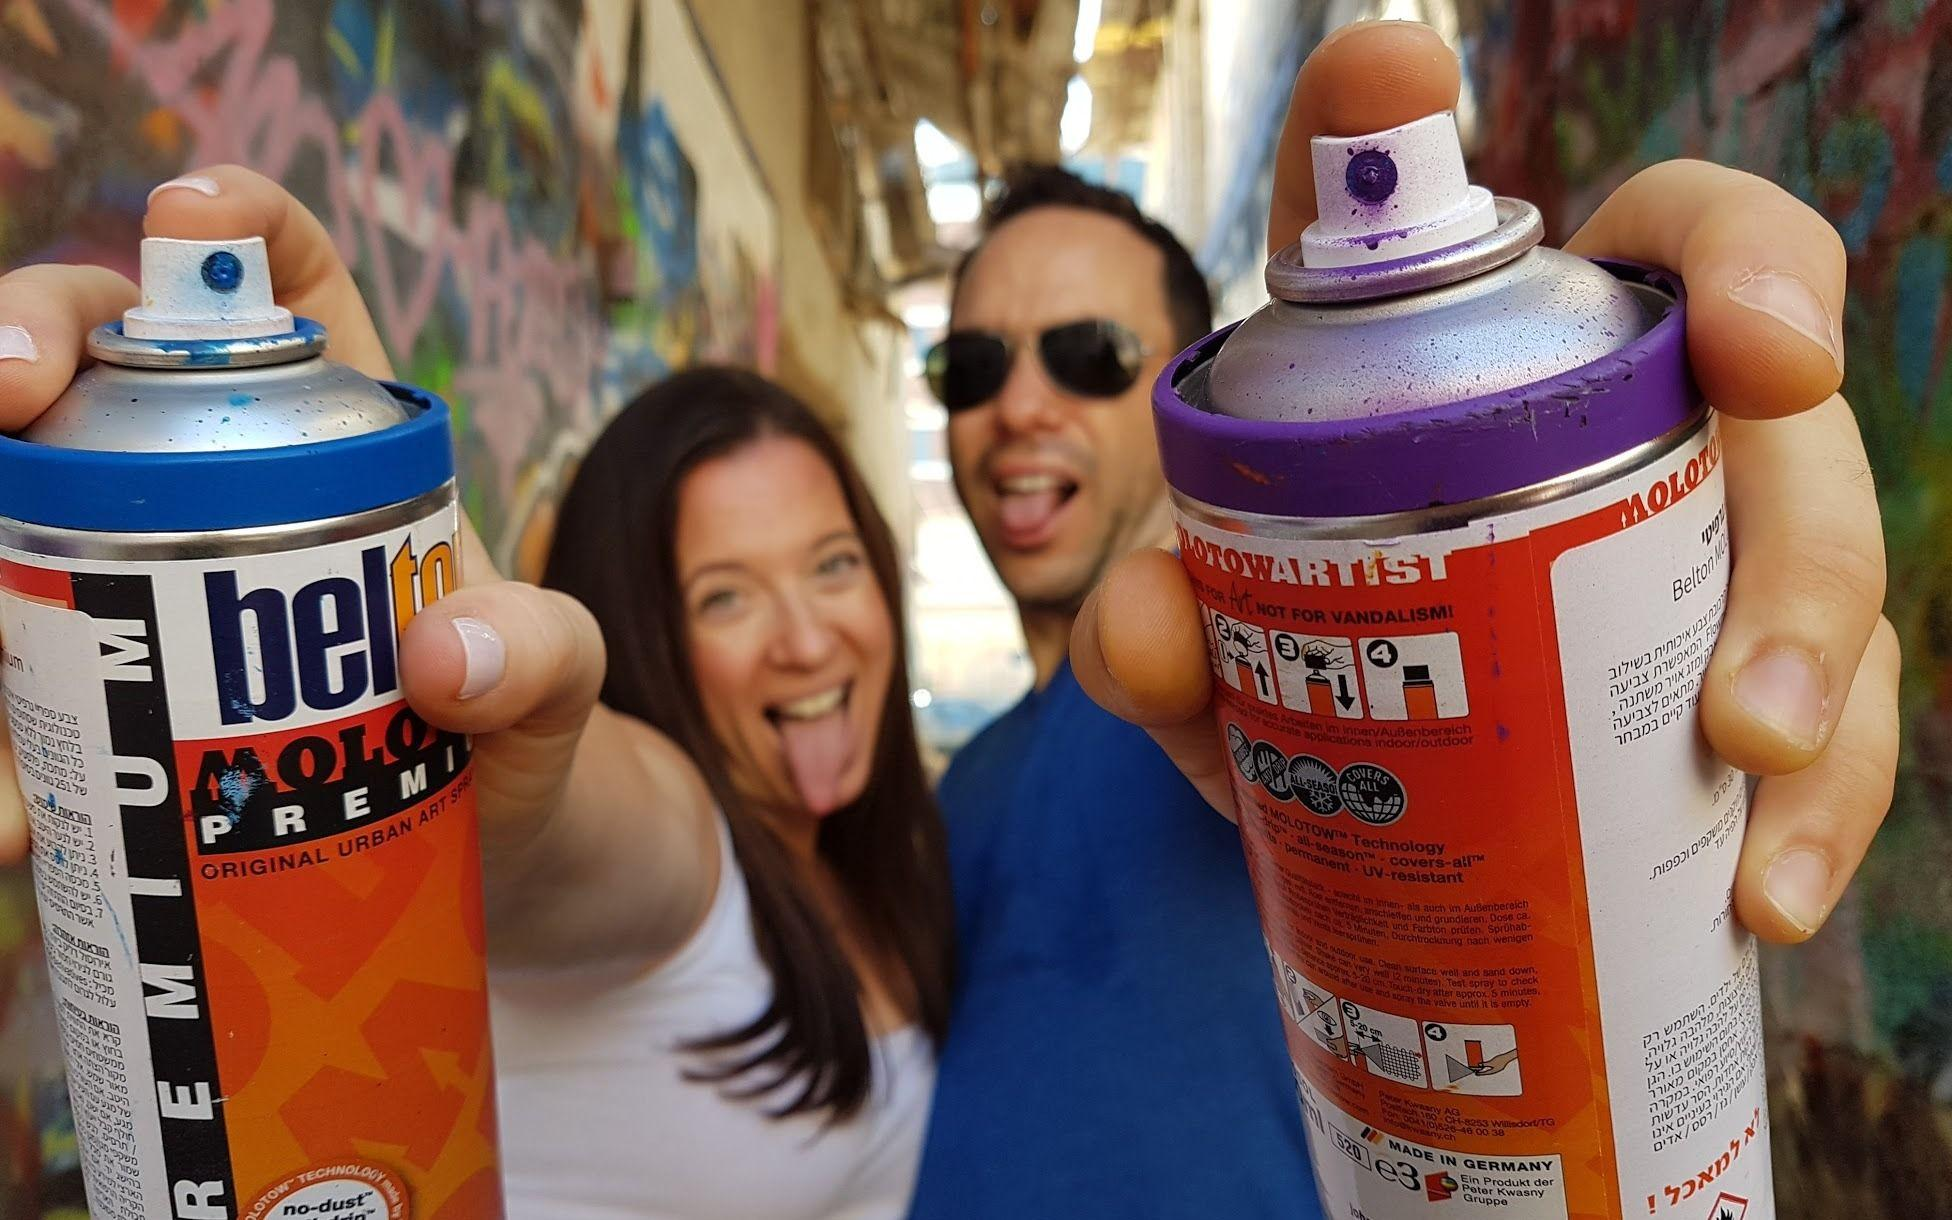 Graffiti-date A pampering activity for couples